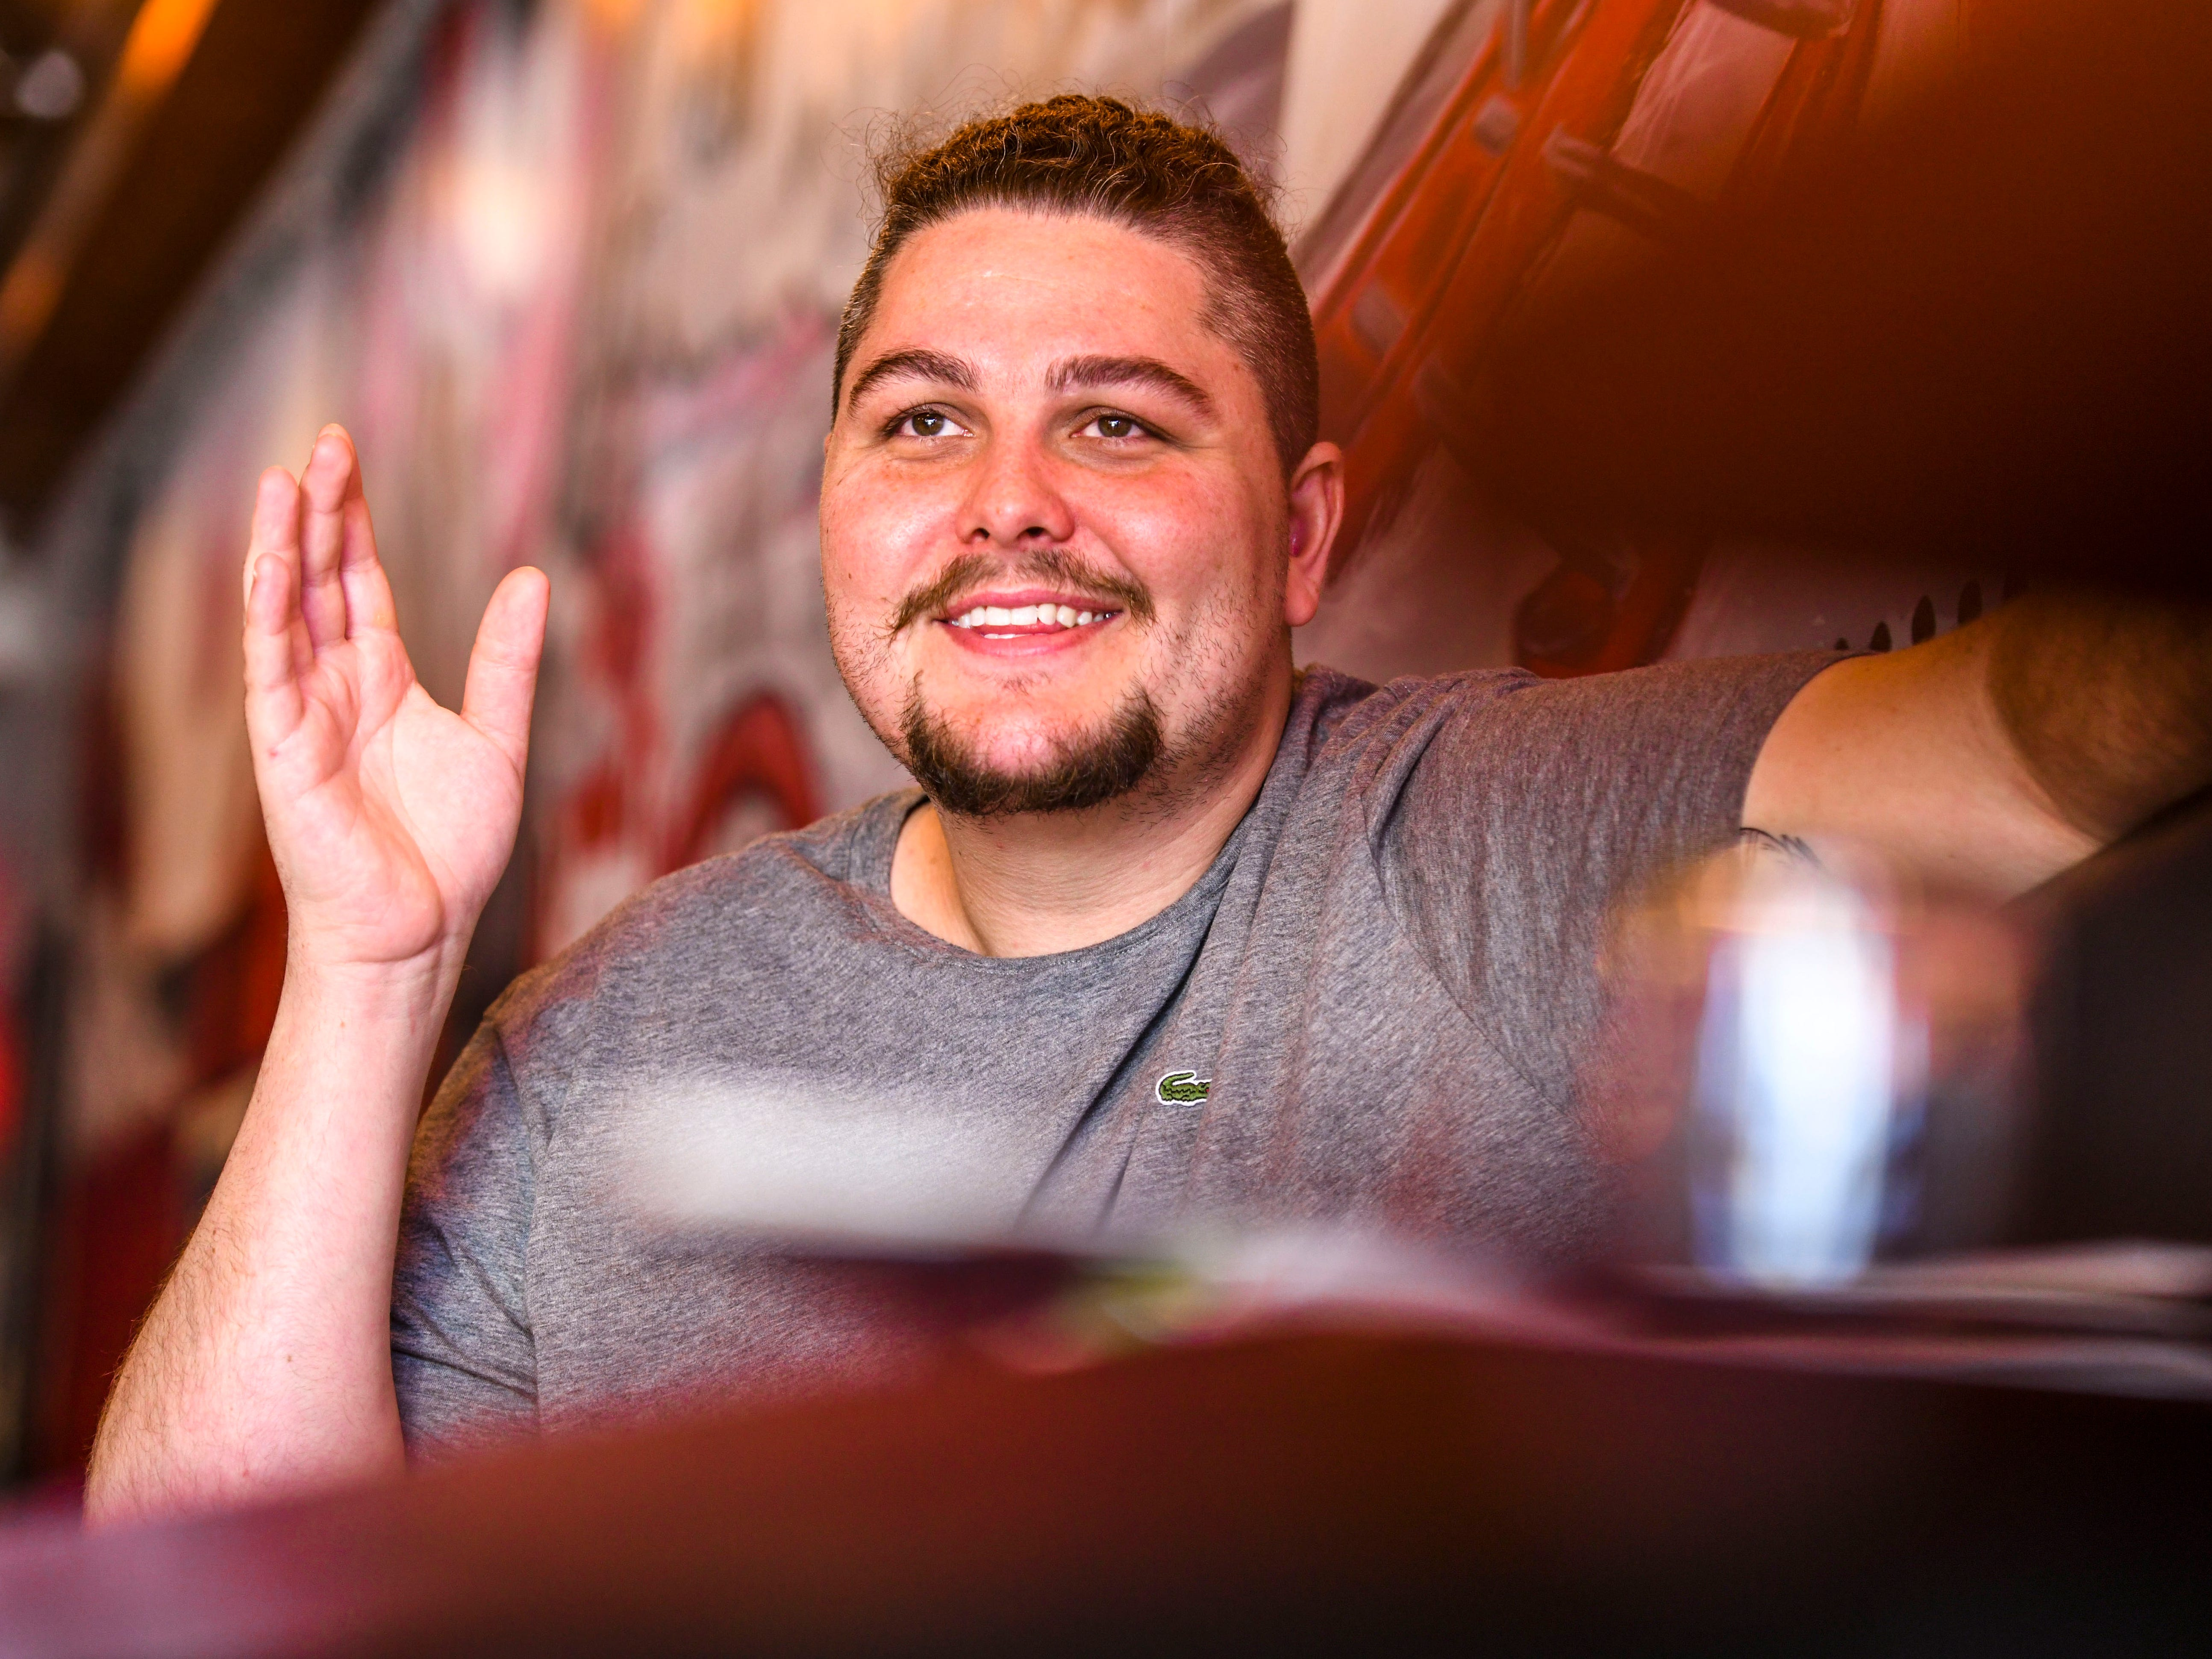 Dylan Saad, chef and owner of Primo Pizzakaya, jokes about his earlier endeavors of education prior to realizing his passion of the culinary arts and the opening of his pizzaria-type restaurant in Tumon, during an interview on Wednesday, Jan. 2, 2019.